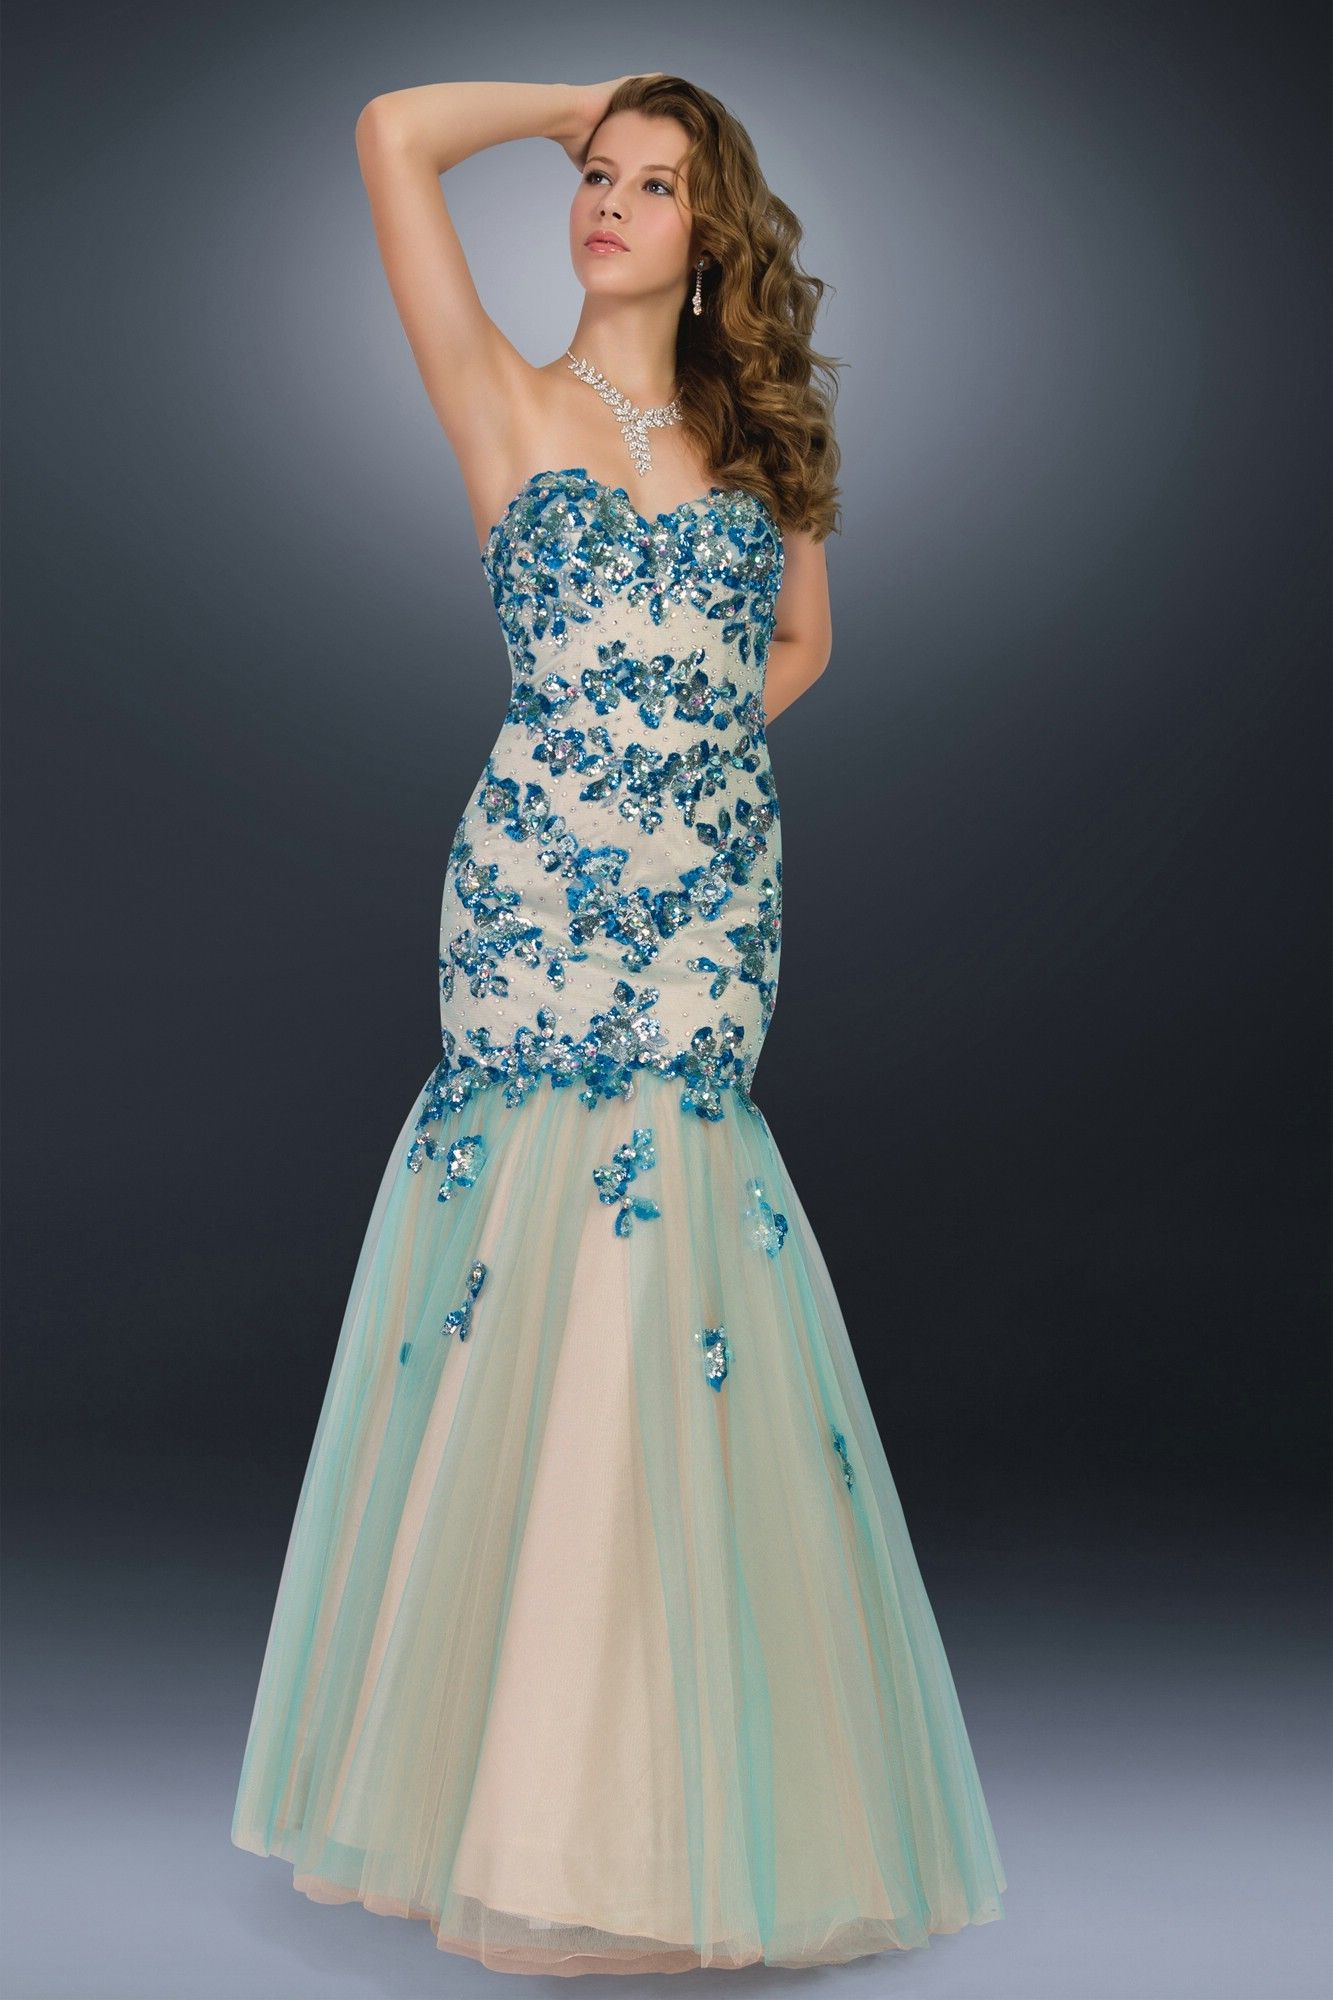 2Cute - Style 1448 #homecoming #prom #dresses | Fancy | Pinterest ...